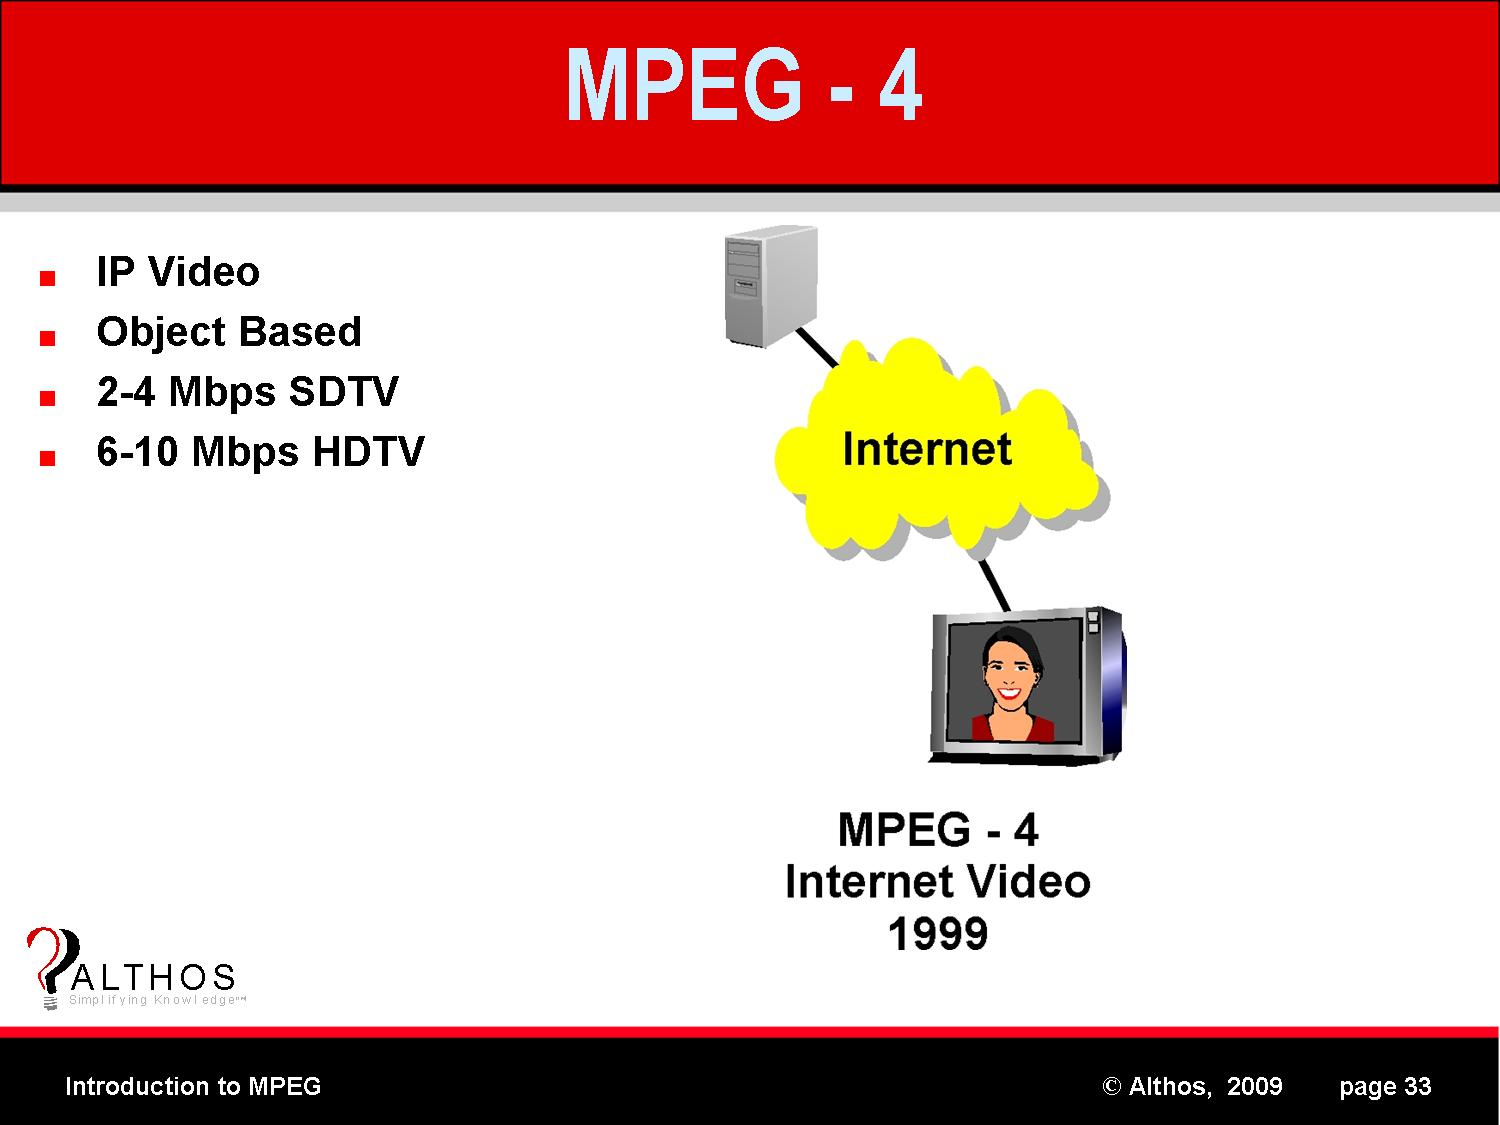 mpeg4 video: